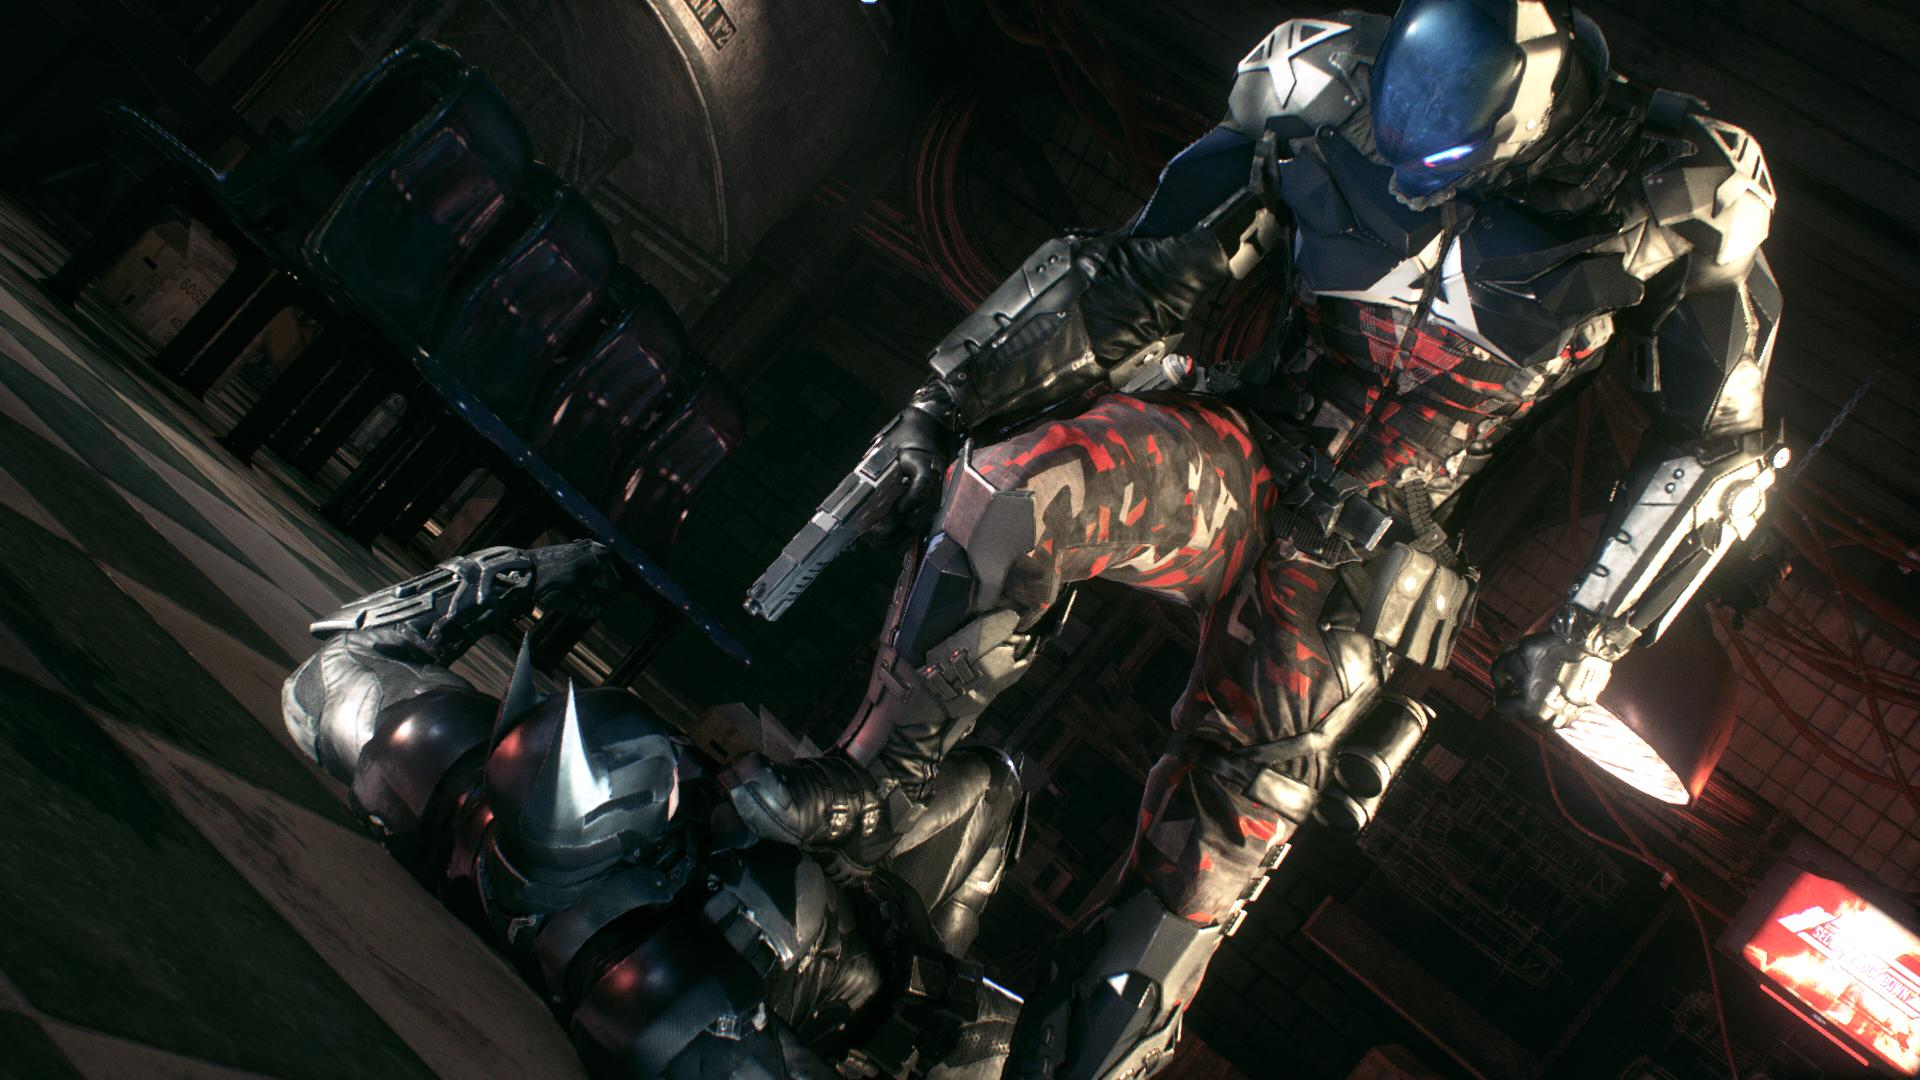 000108.Jpg - Batman: Arkham Knight